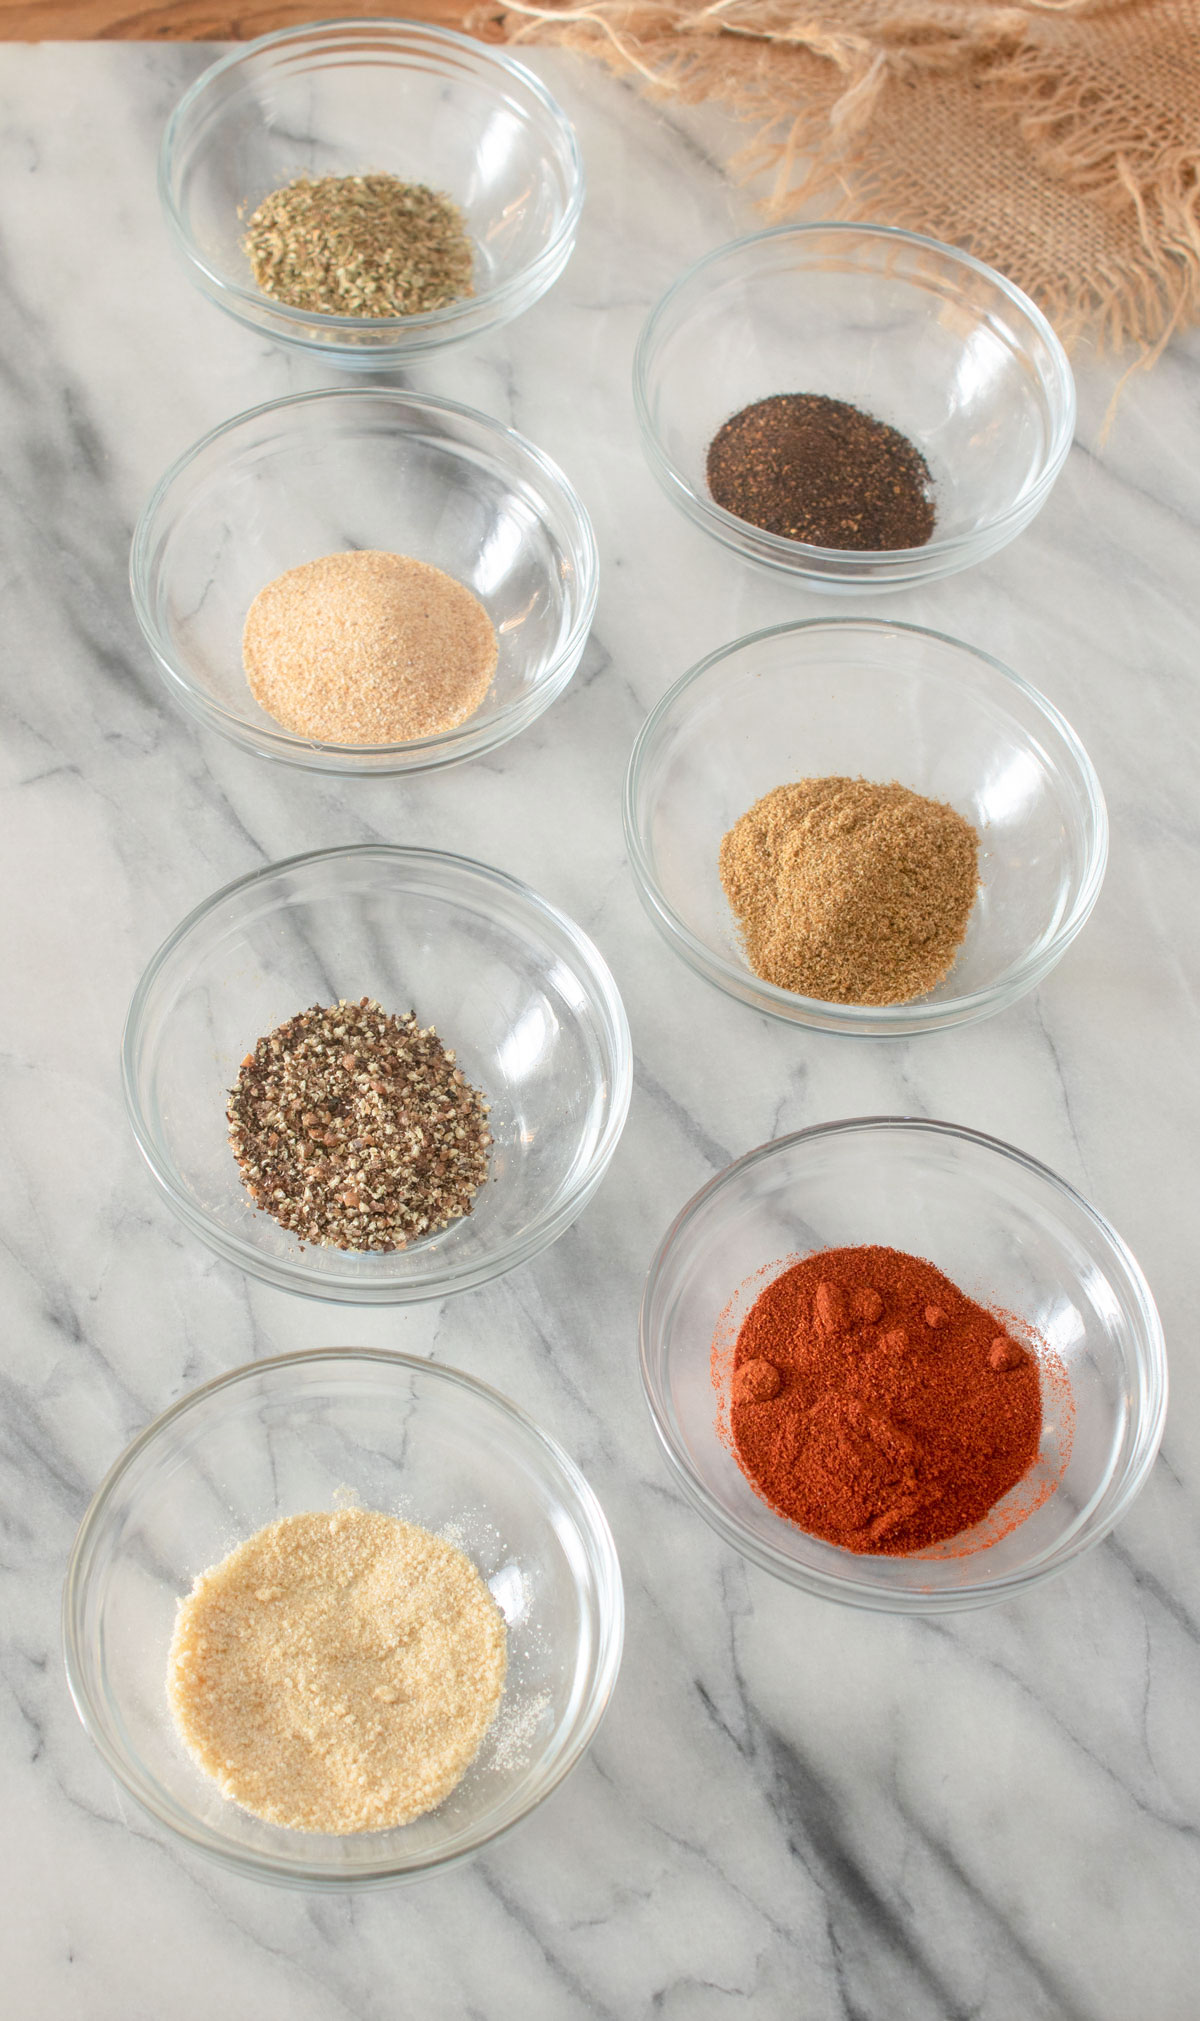 Spices in individual piles on marble board.